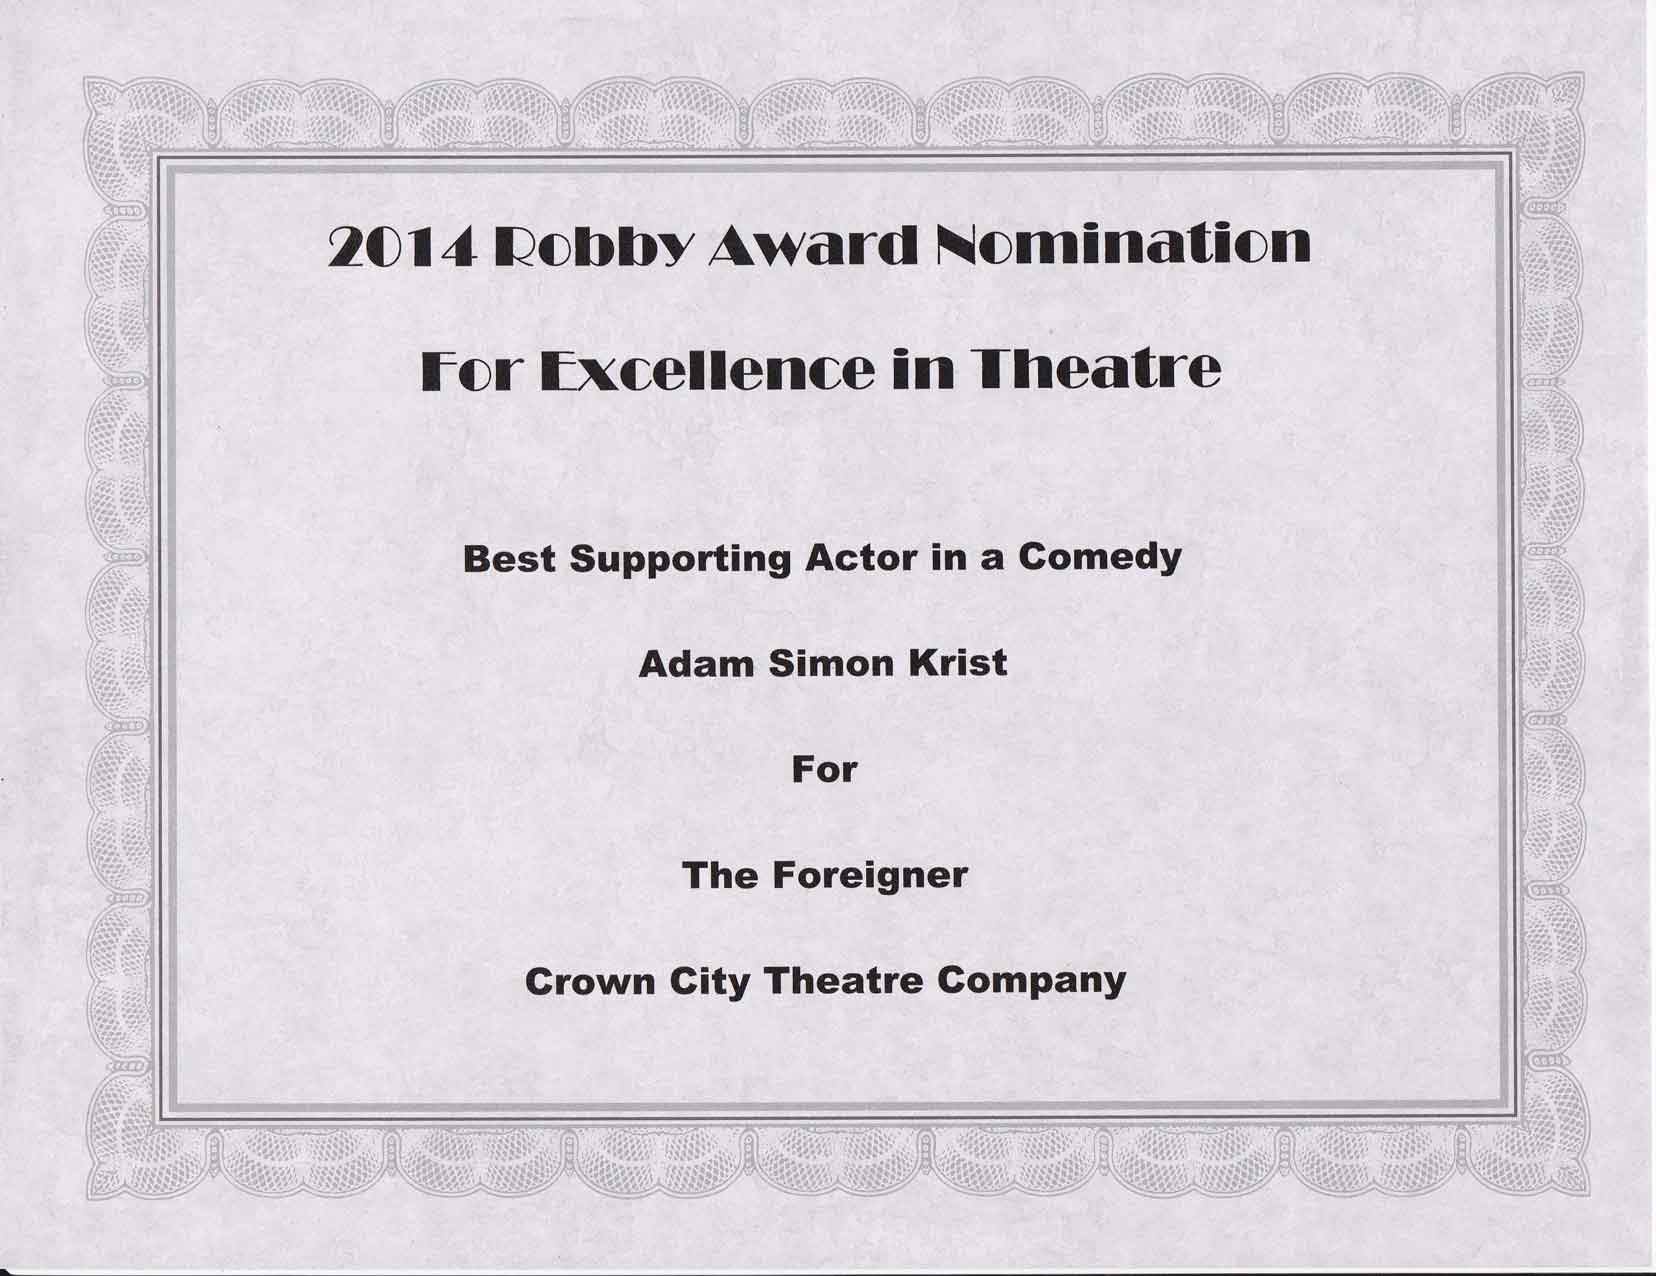 supp-actor_0006-robby-award